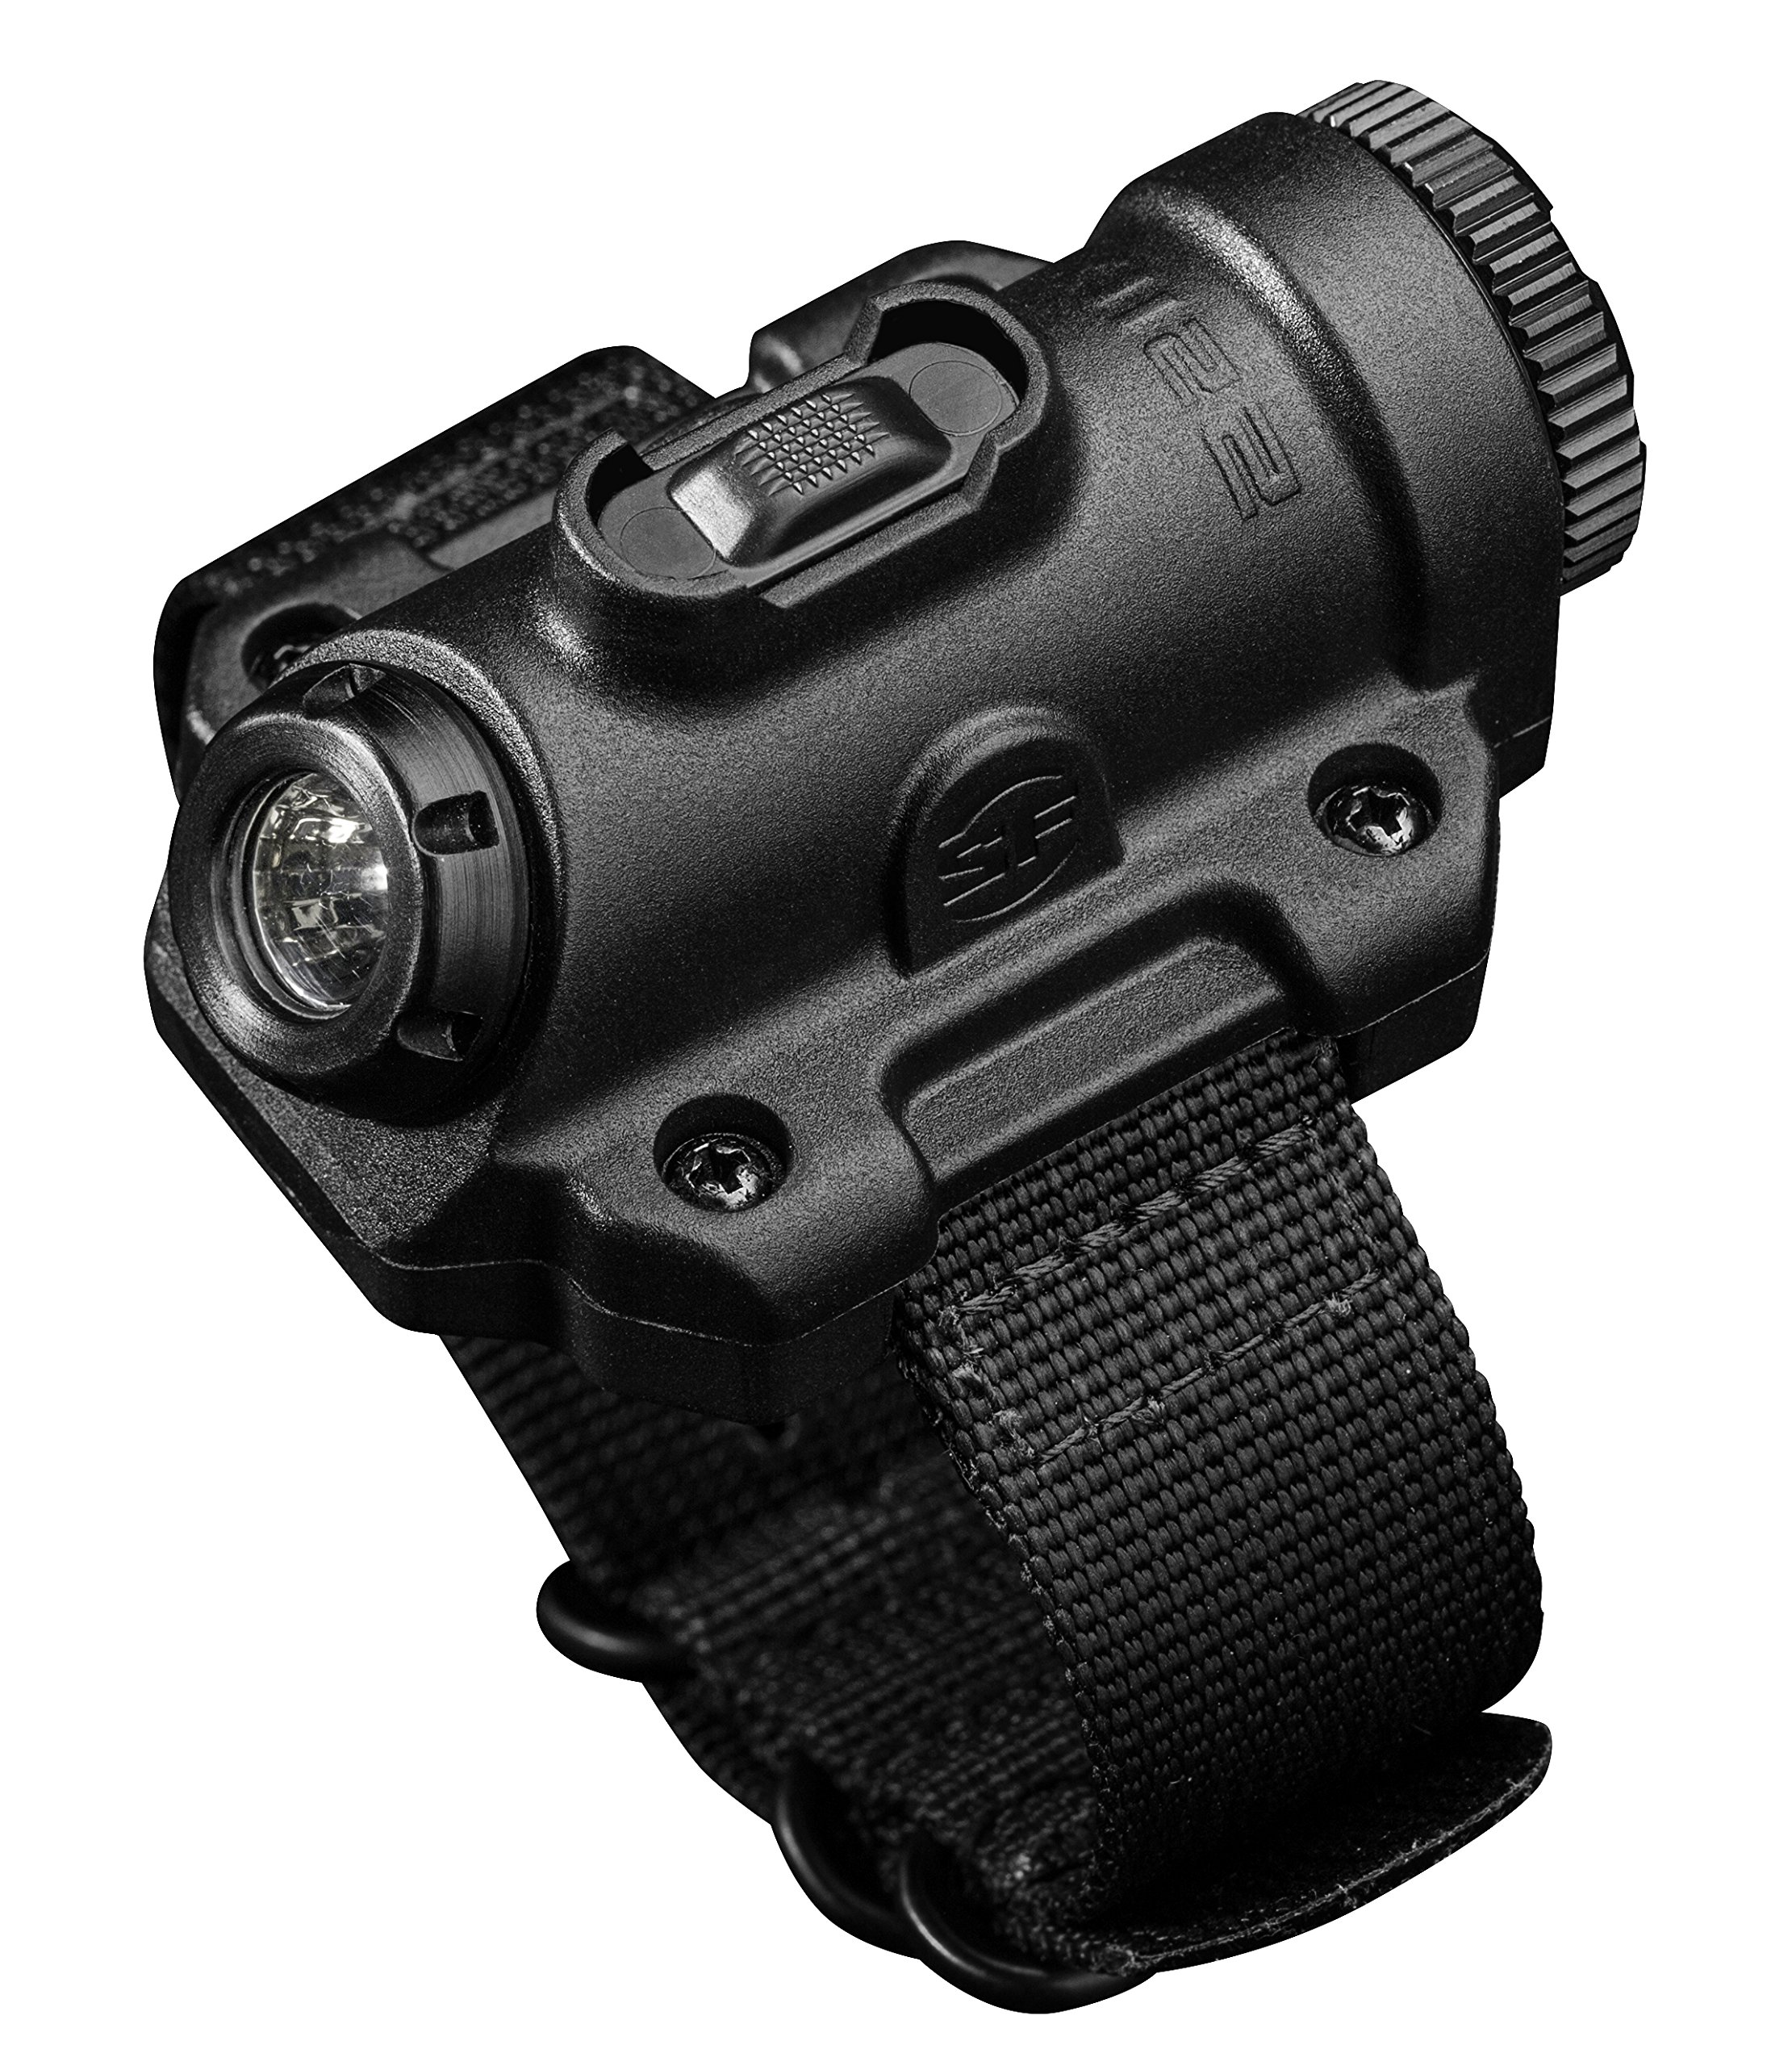 SureFire 2211X Variable Output 123A Powered LED WristLight by SureFire